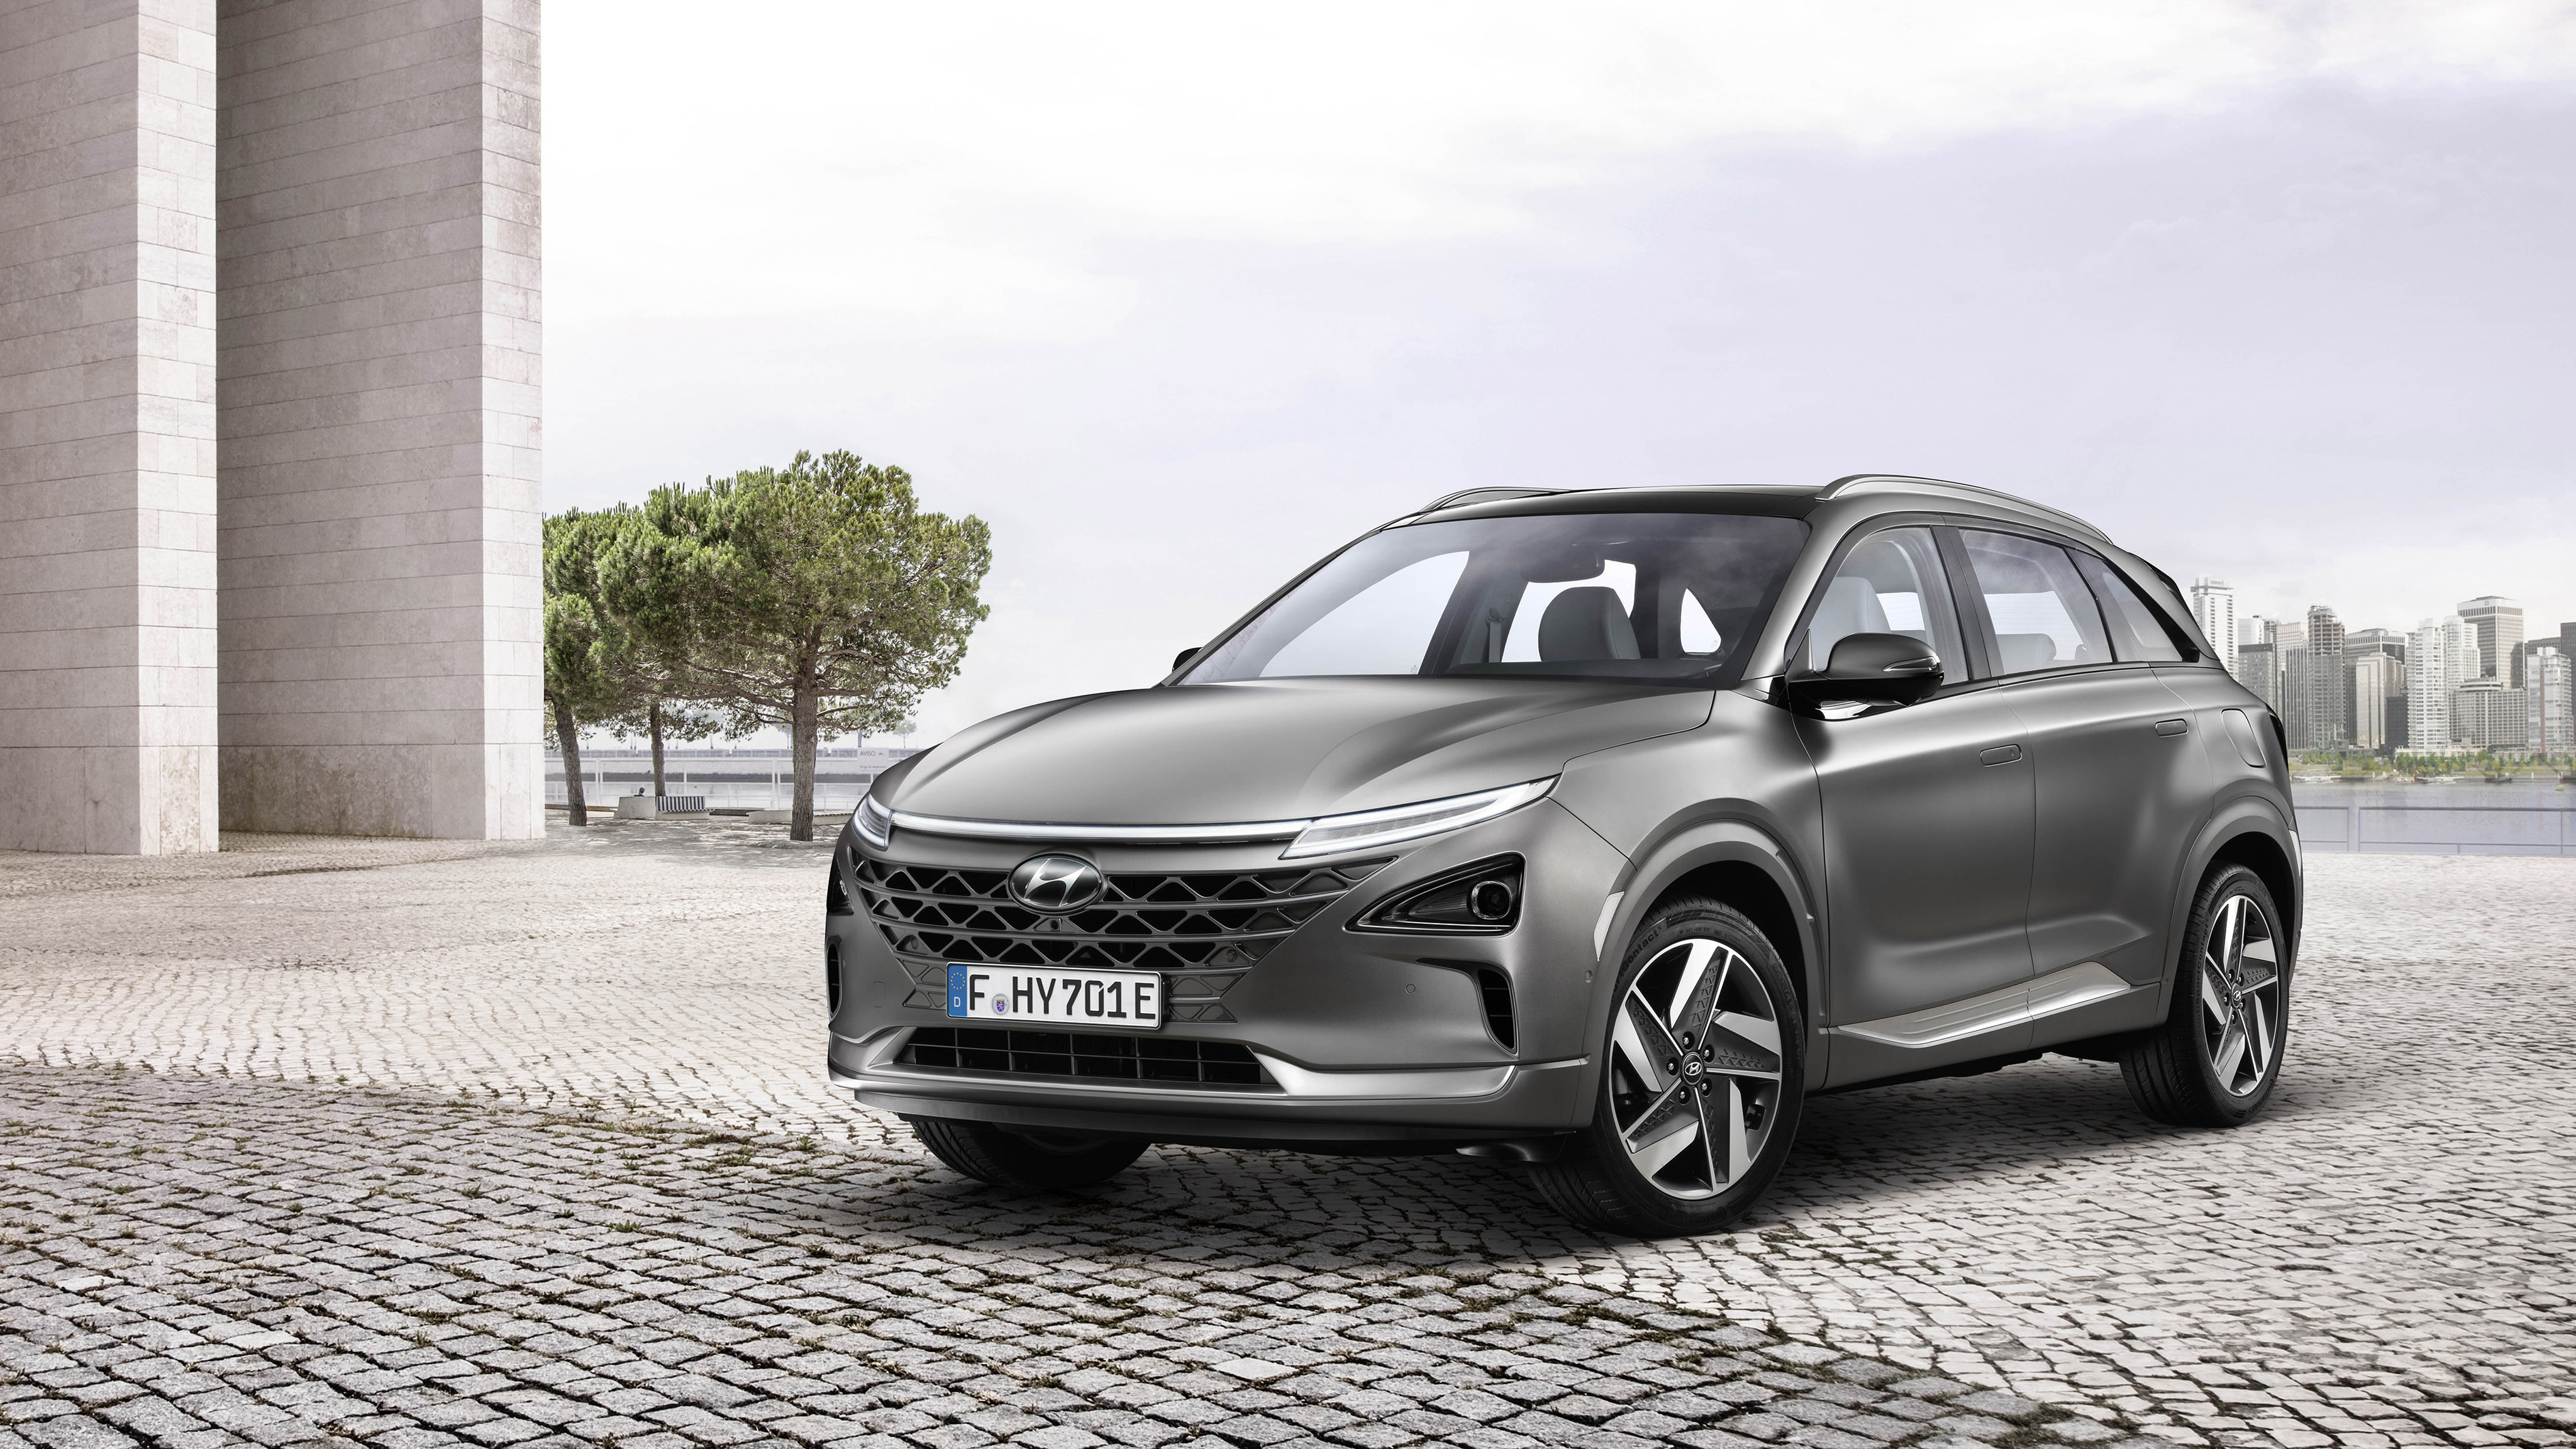 2018 Hyundai Nexo 4K Wallpaper HD Car Wallpapers ID 9683 4096x2304